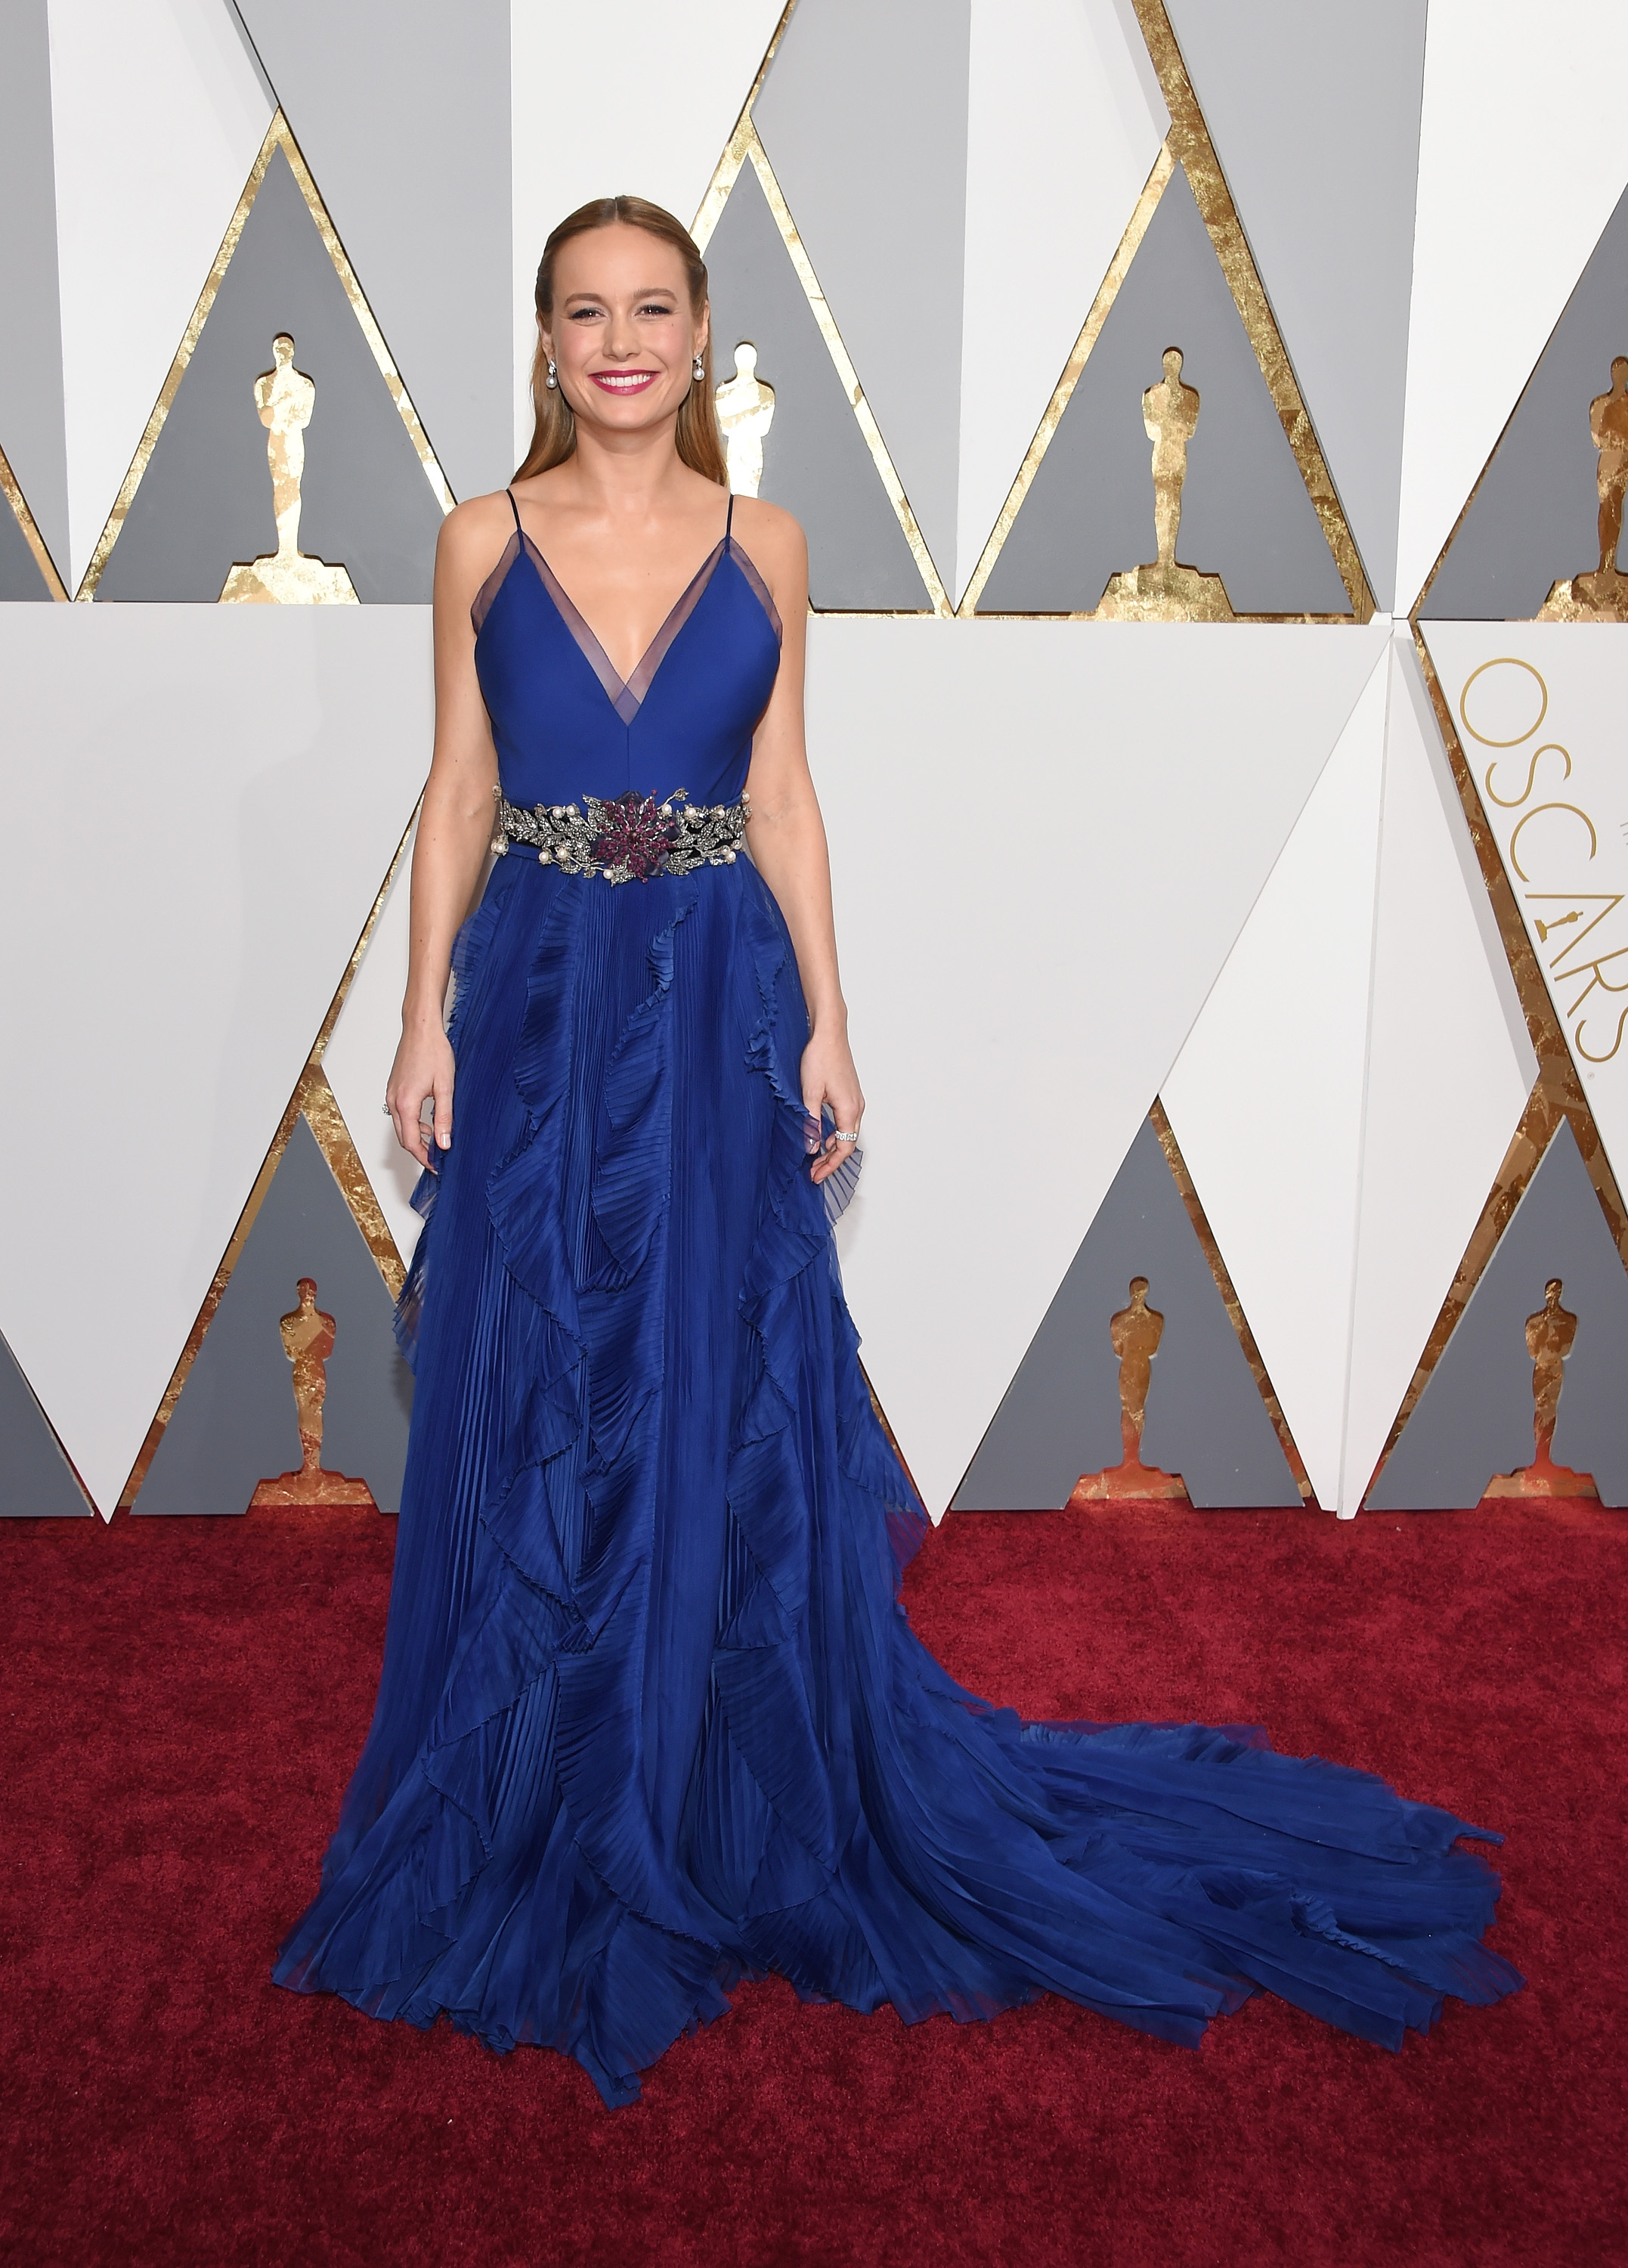 An Image of Brie Larson at the 2016 Oscars